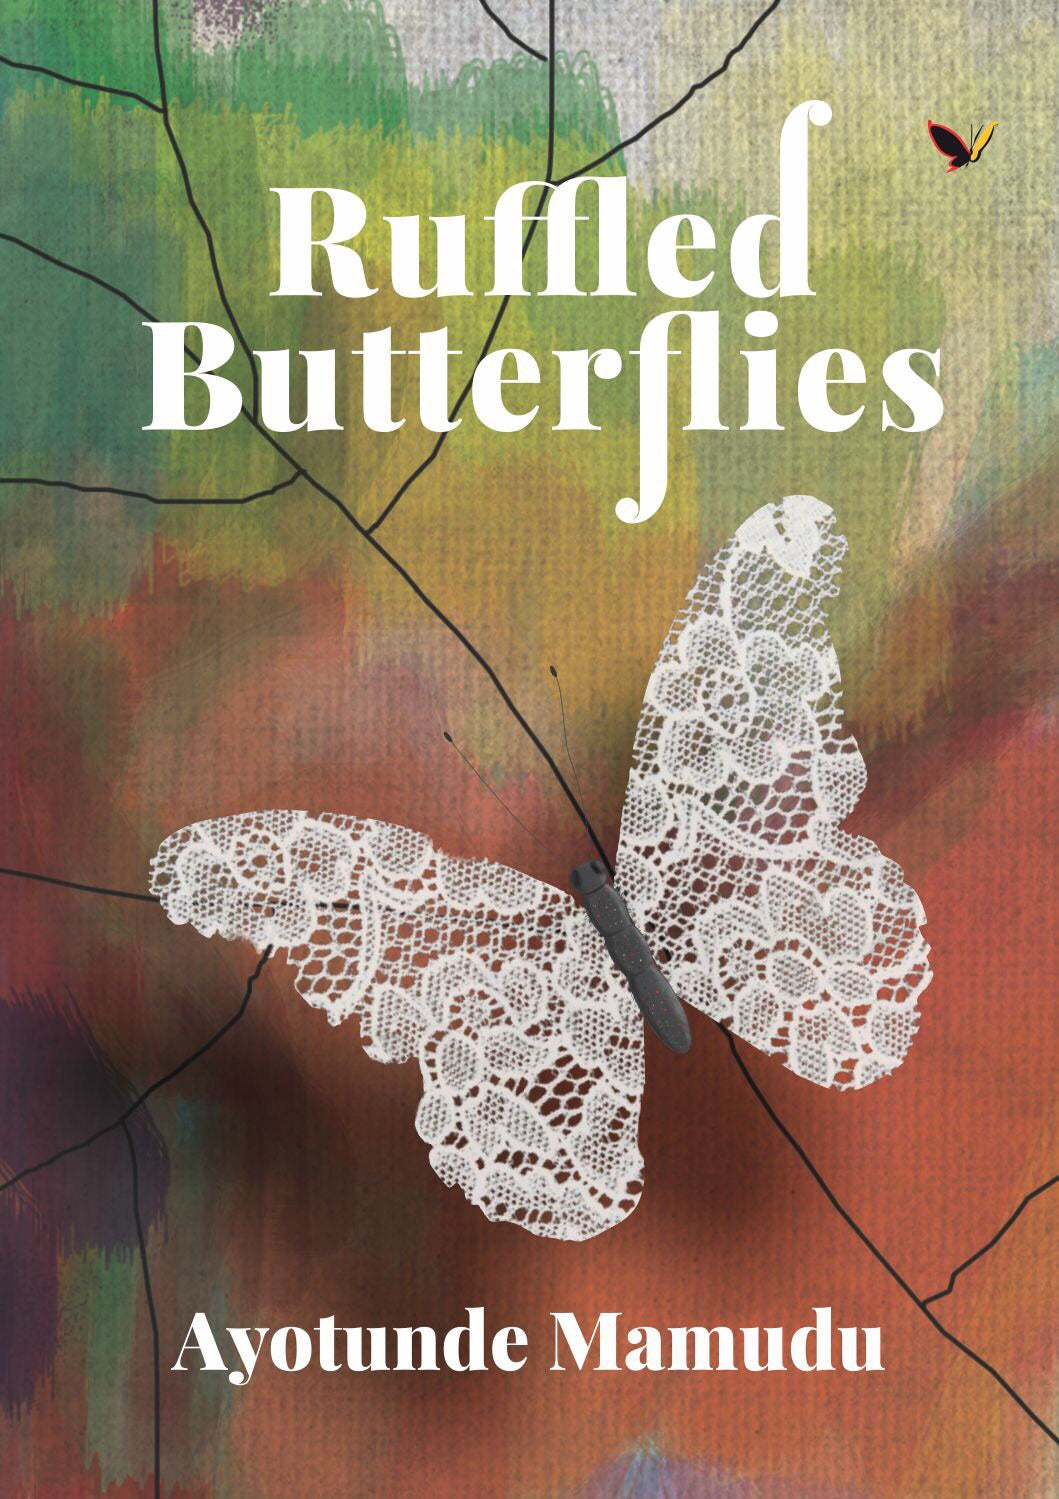 Ruffled Butterflies